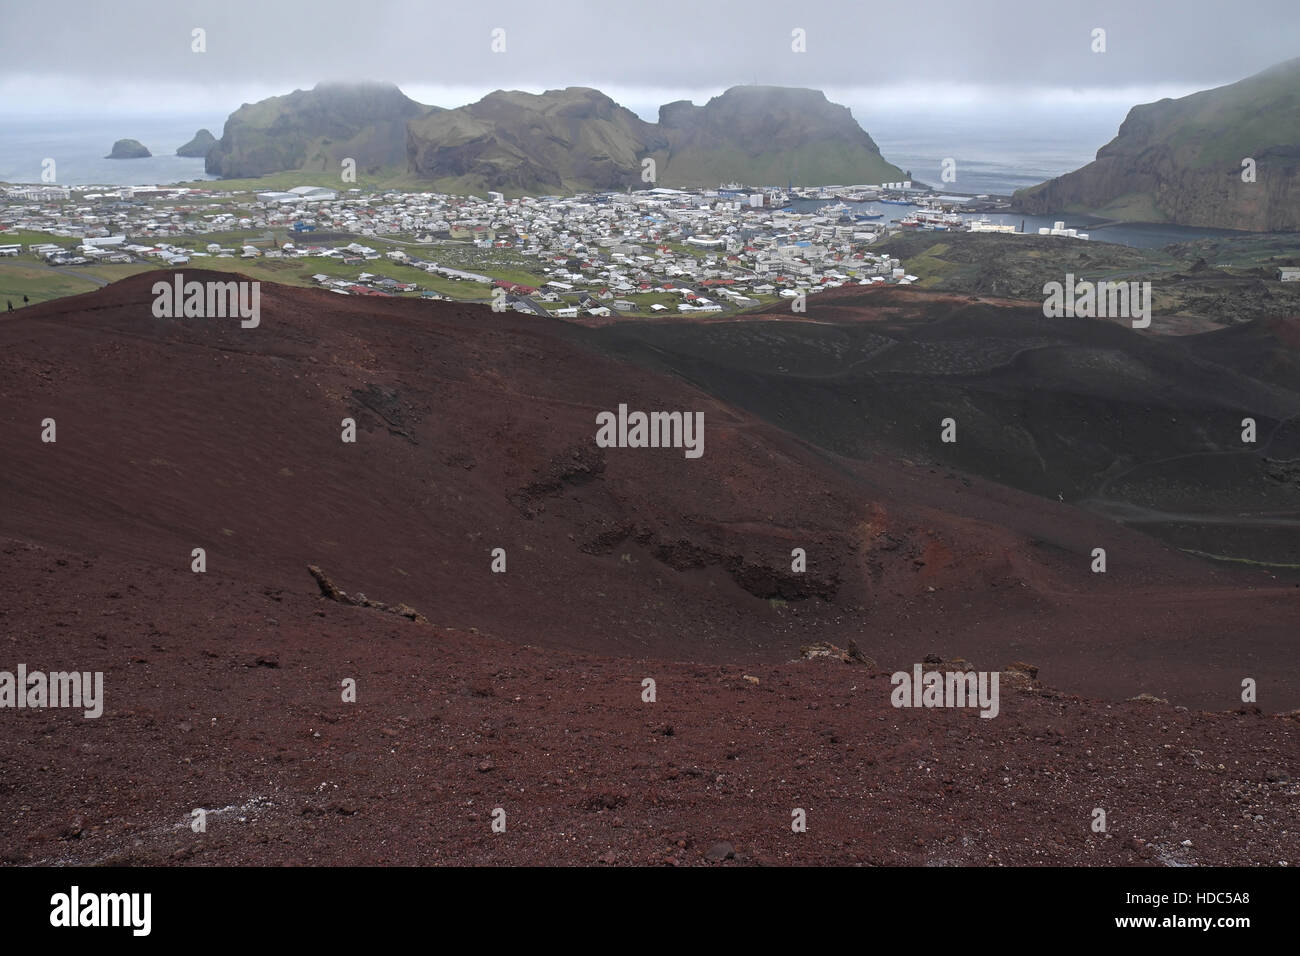 Heimaey seen over volcanic rocks and lava field from of Eldfell, Heimaey, Vestmannaeyjar Islands, southern Iceland - Stock Image